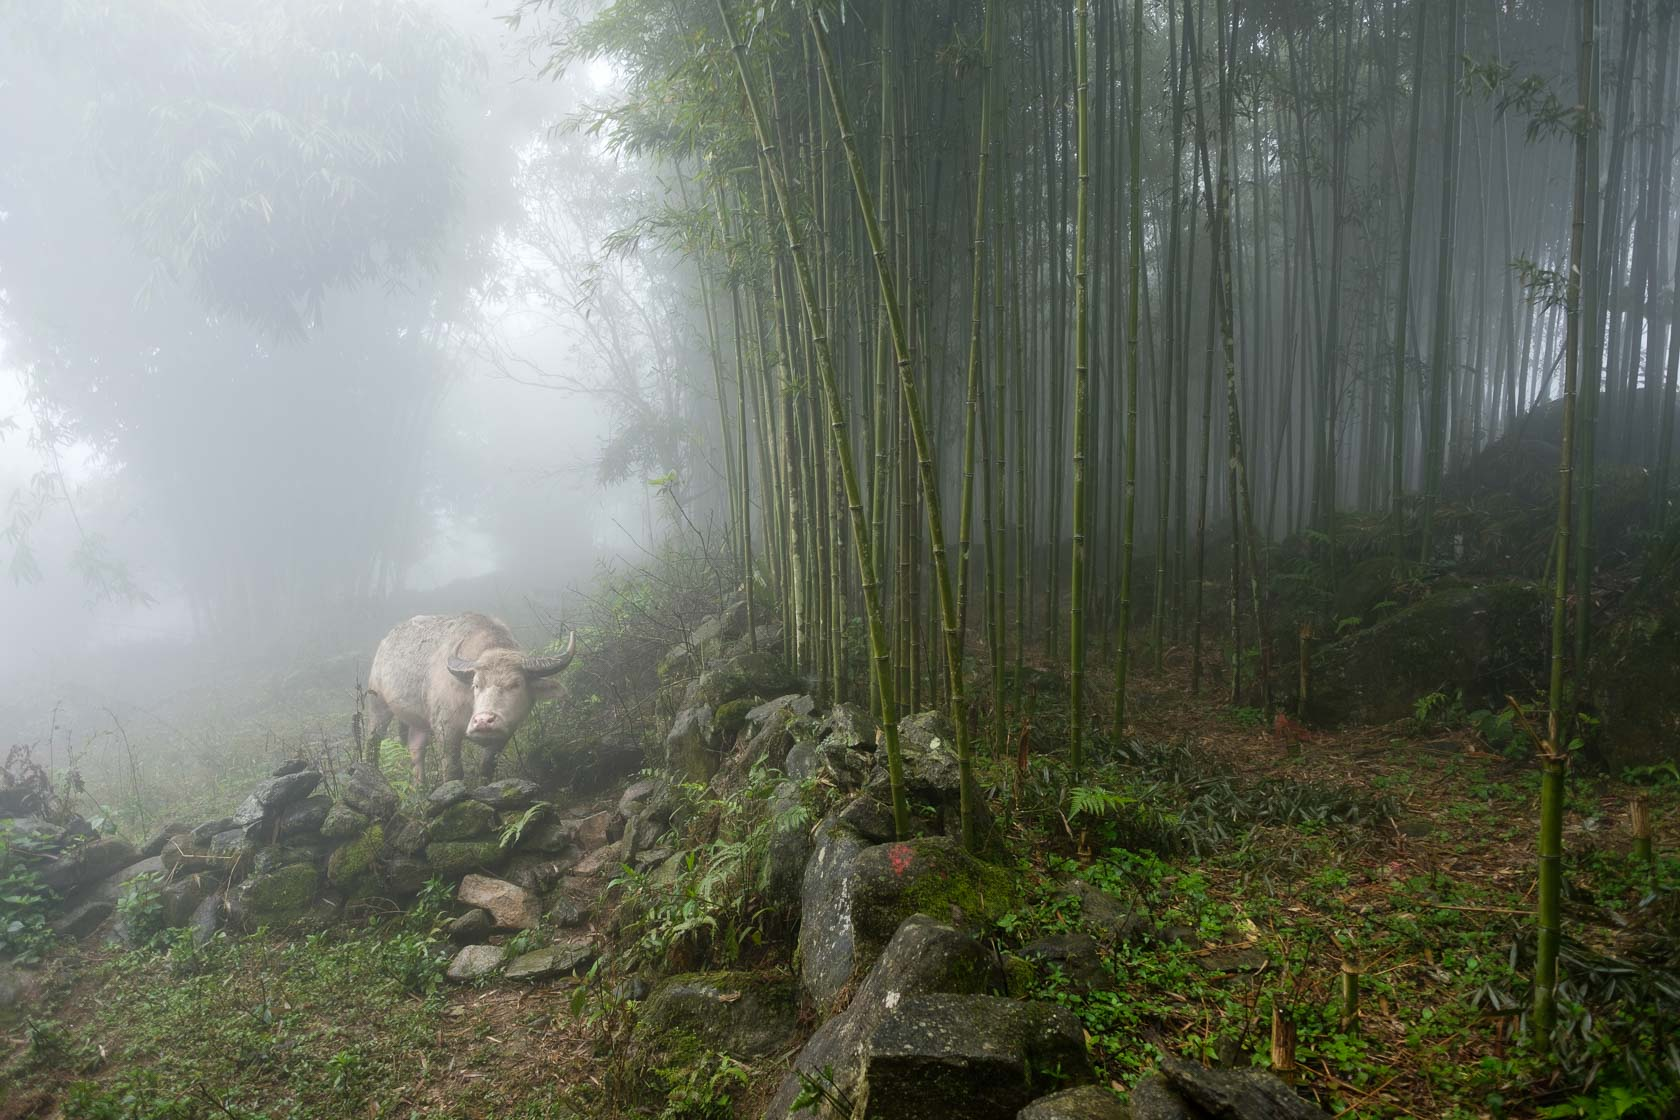 Water Buffalo and Bamboo Forest, Sa Pa, Vietnam